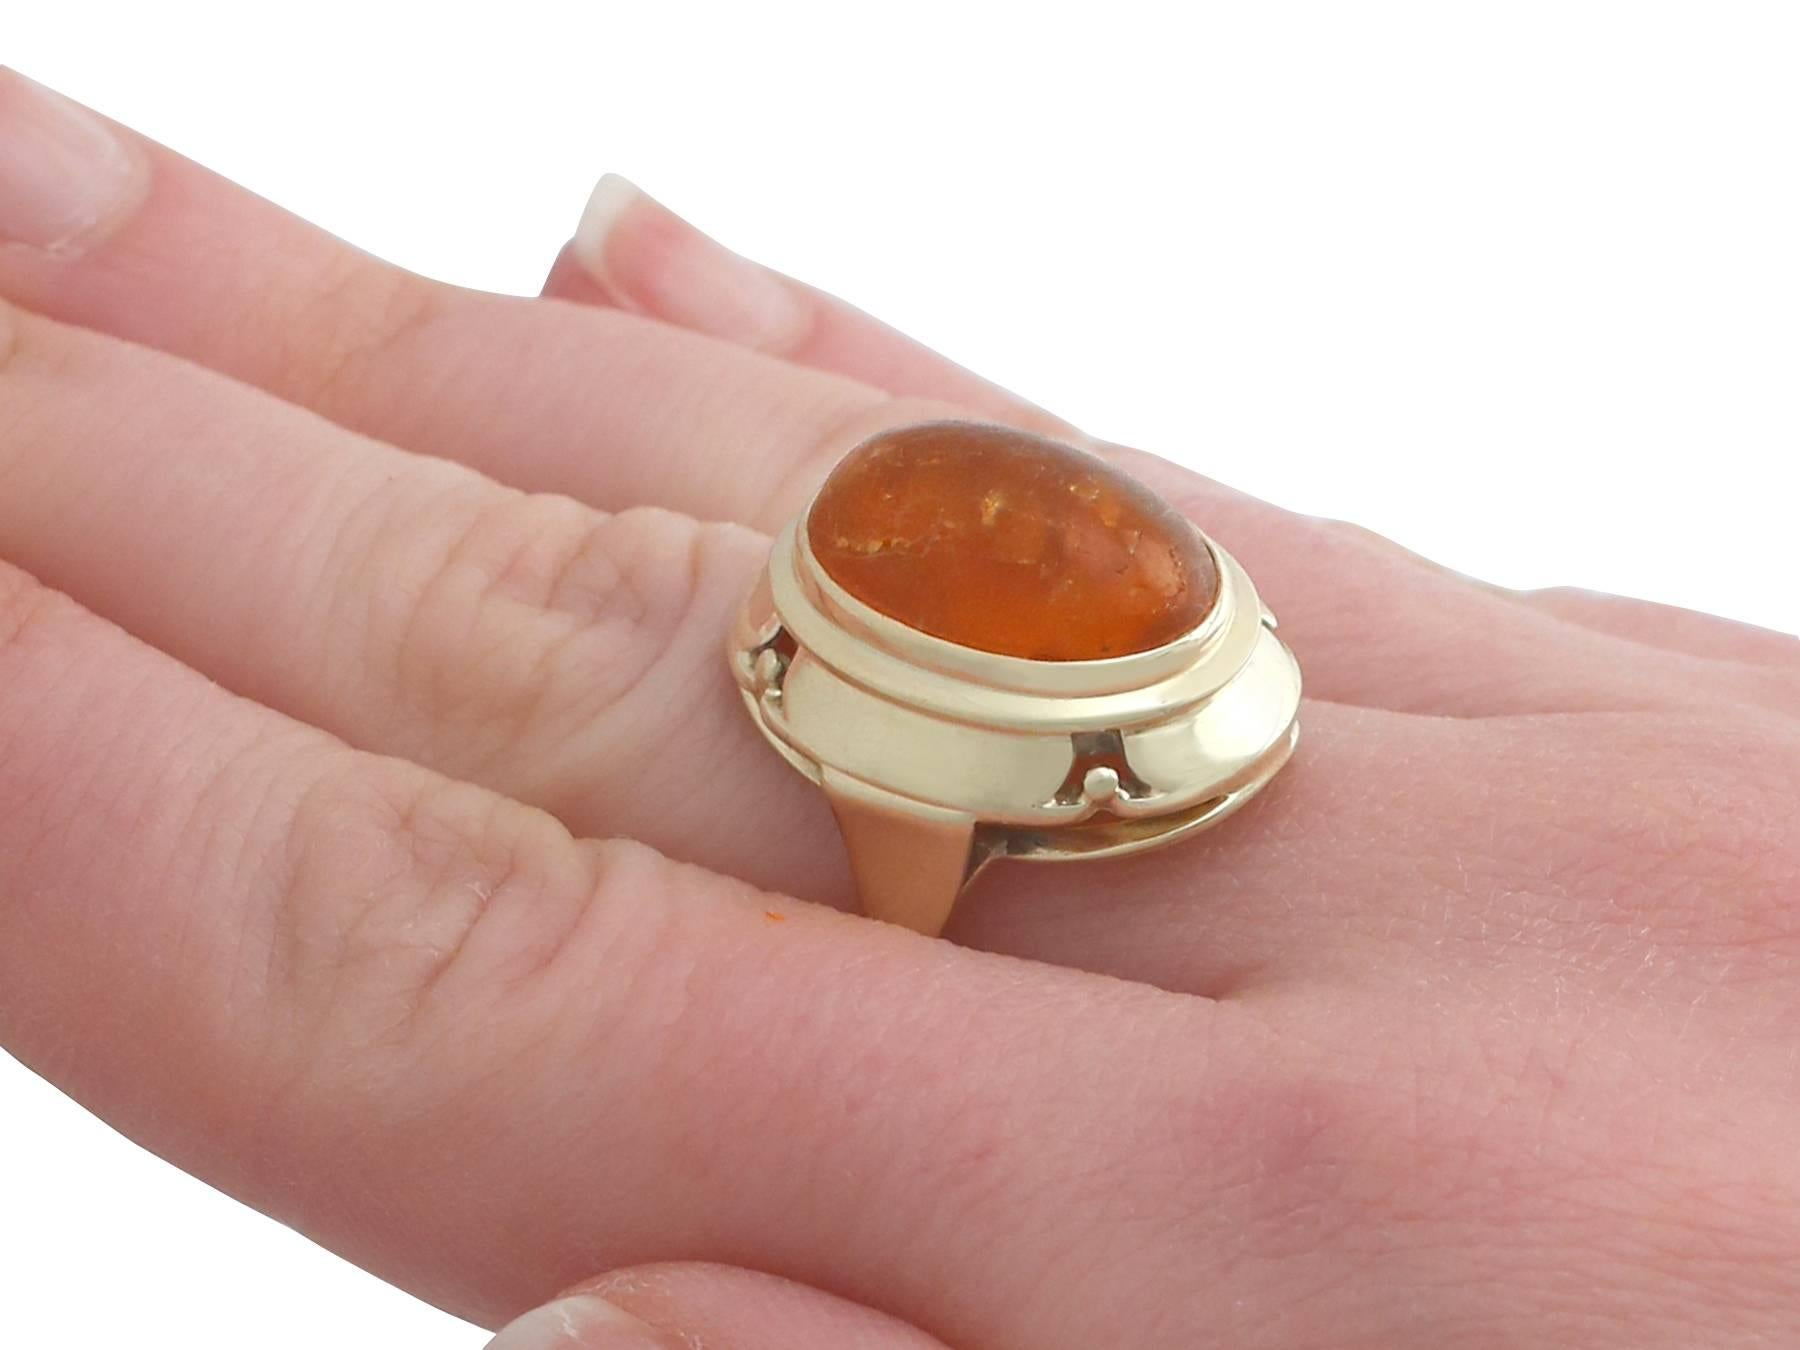 4.61 Carat Amber and Yellow Gold Ring, 1940s For Sale at 1stdibs